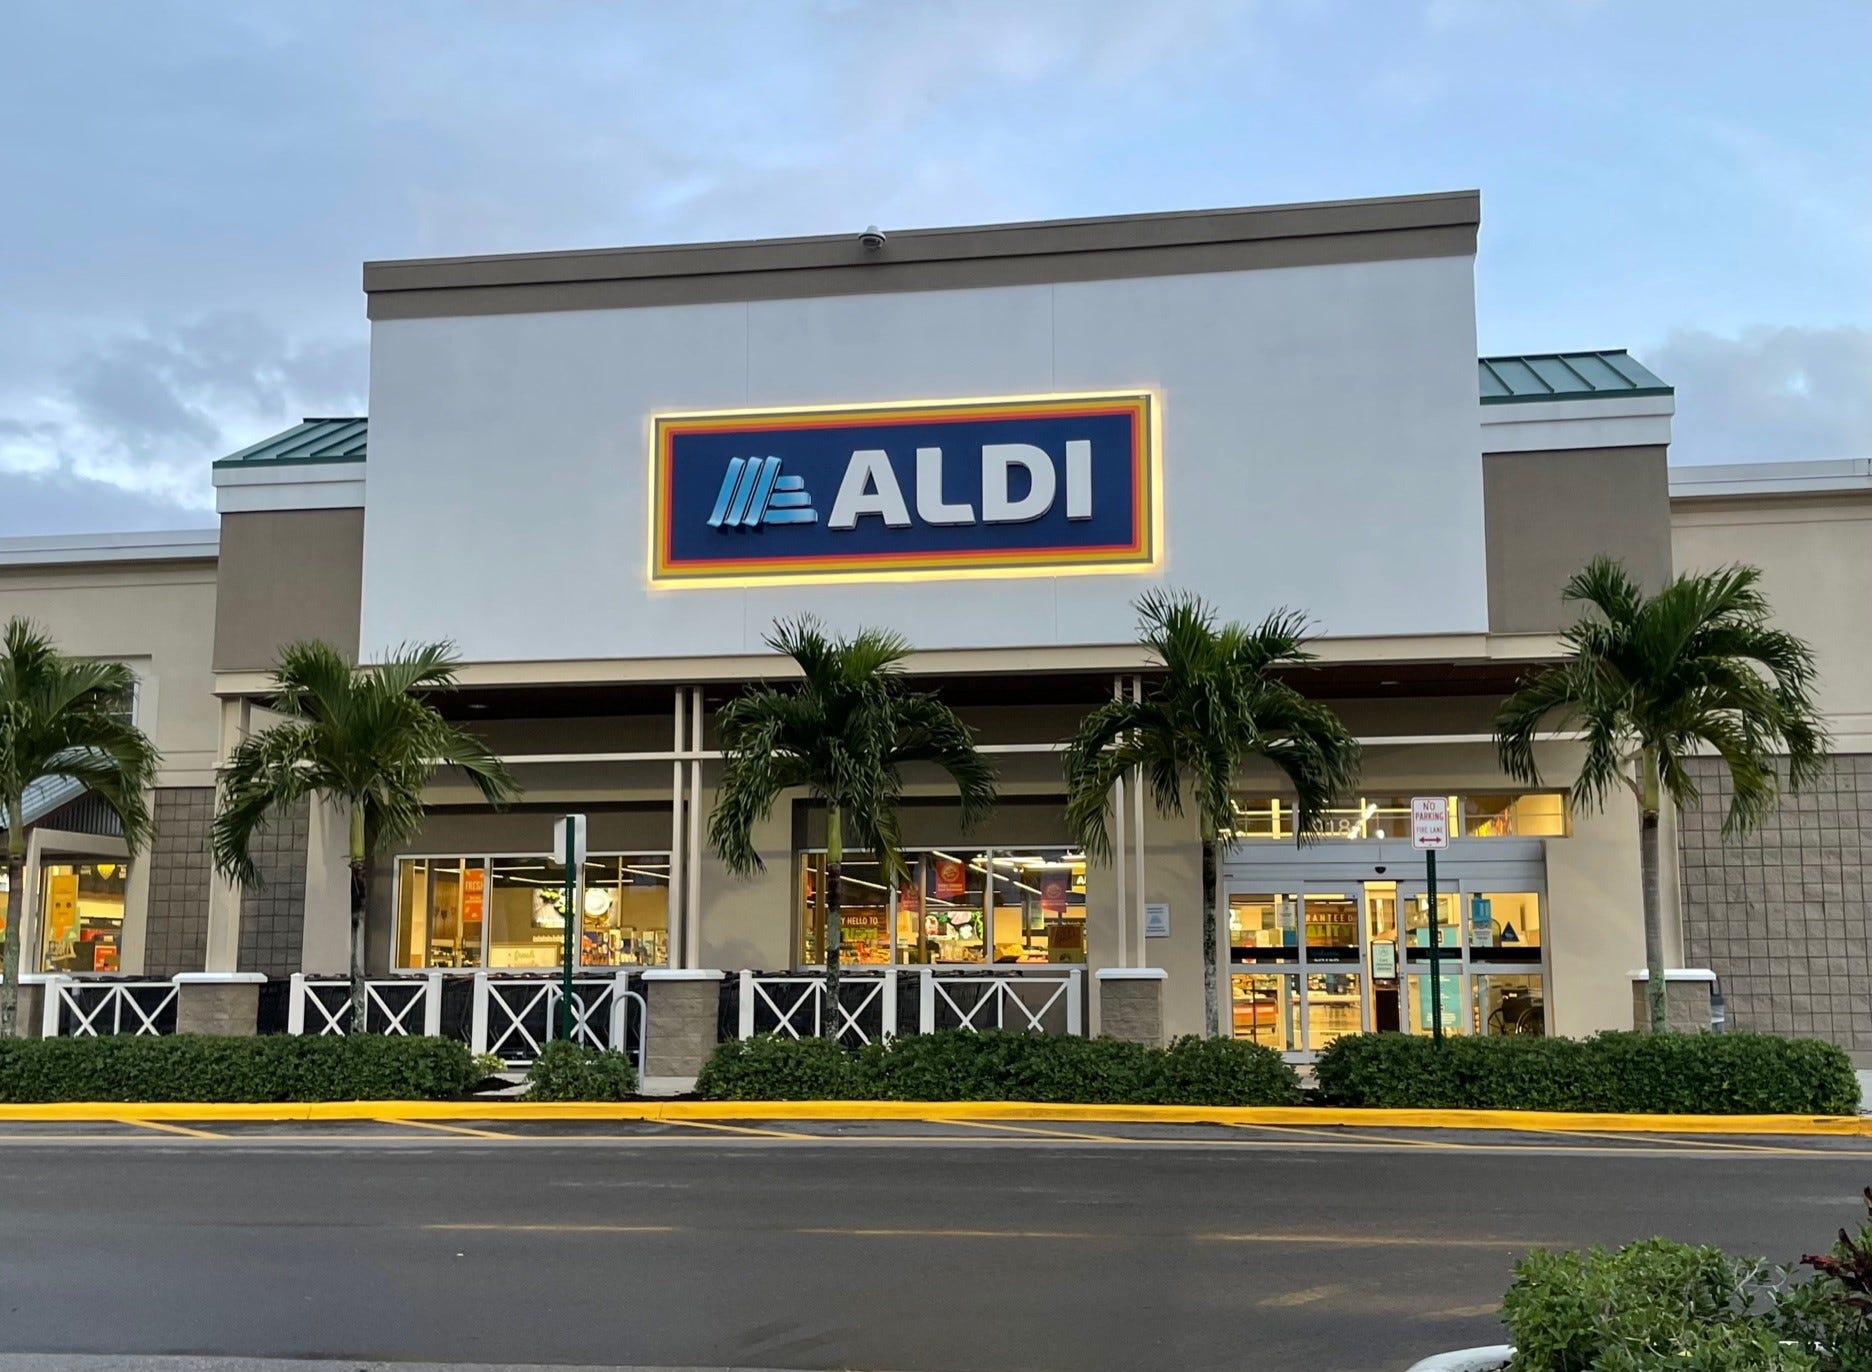 Aldi 101: How to save on groceries, get $2.95 wine, knock-off Chick-fil-A and find rare deals without coupons